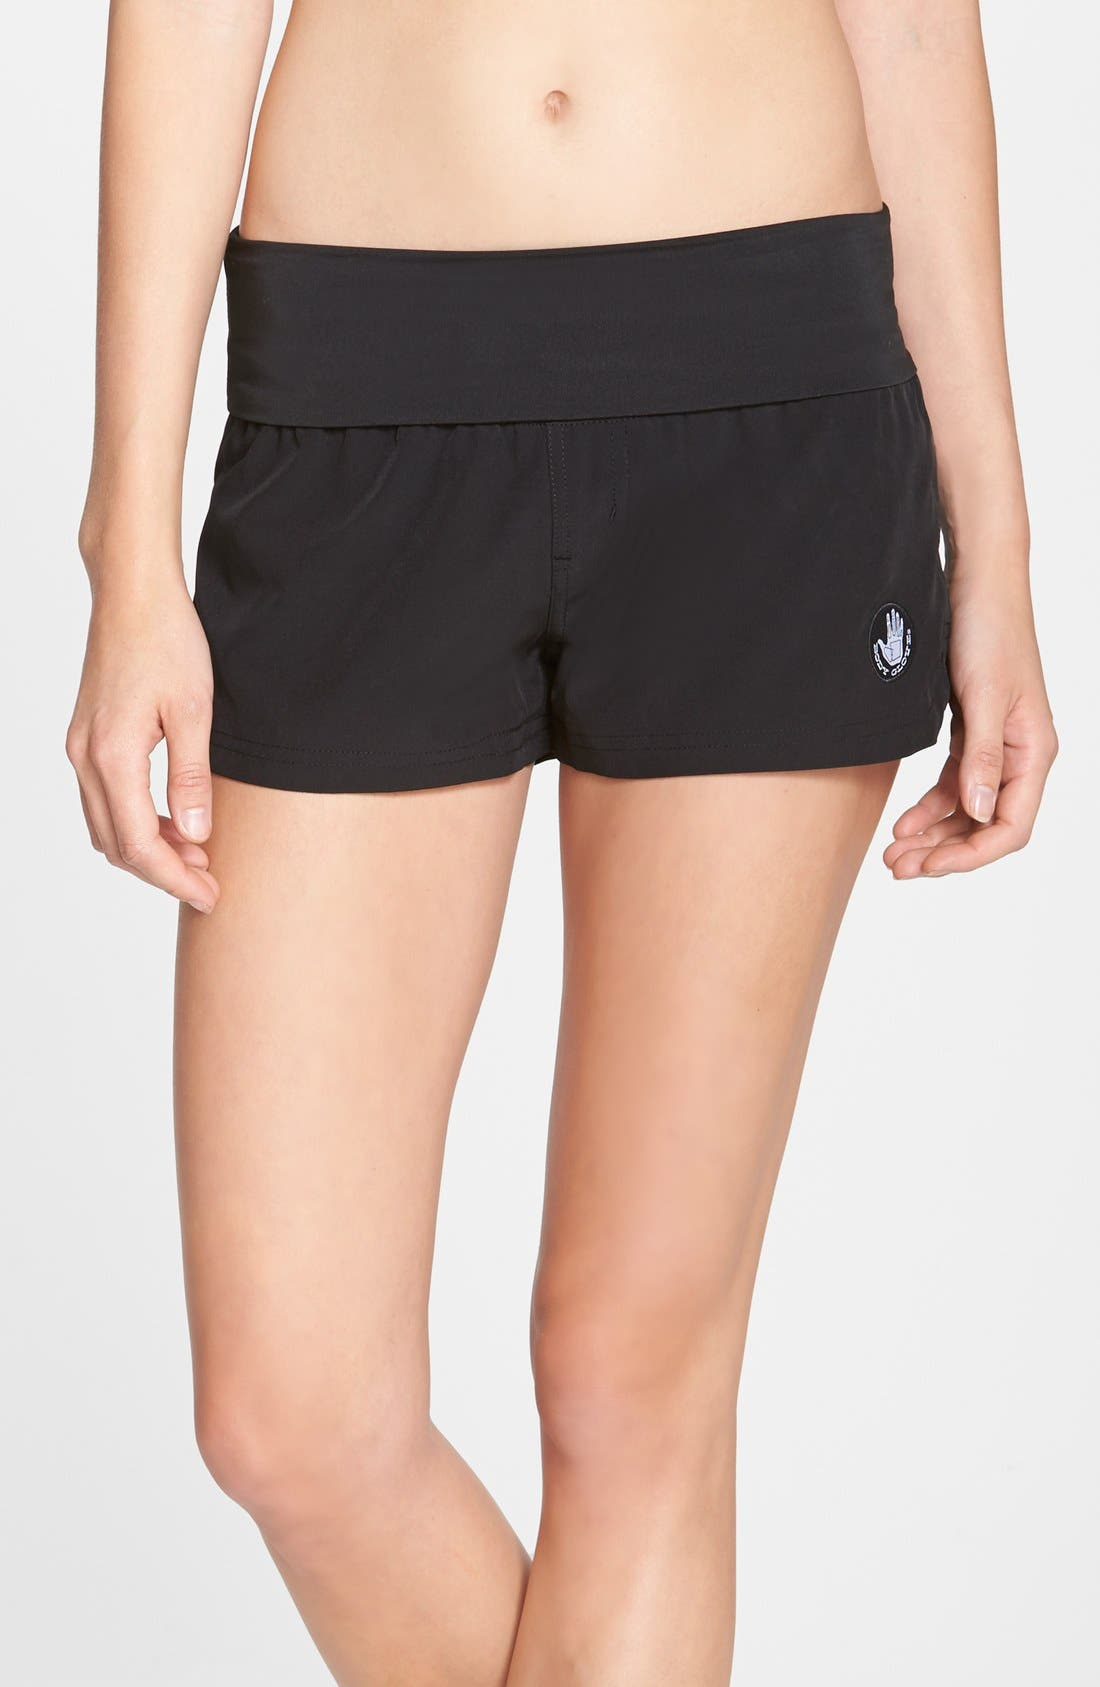 Alternate Image 1 Selected - Body Glove 'Doheny' Water Repellent Microfiber Board Shorts